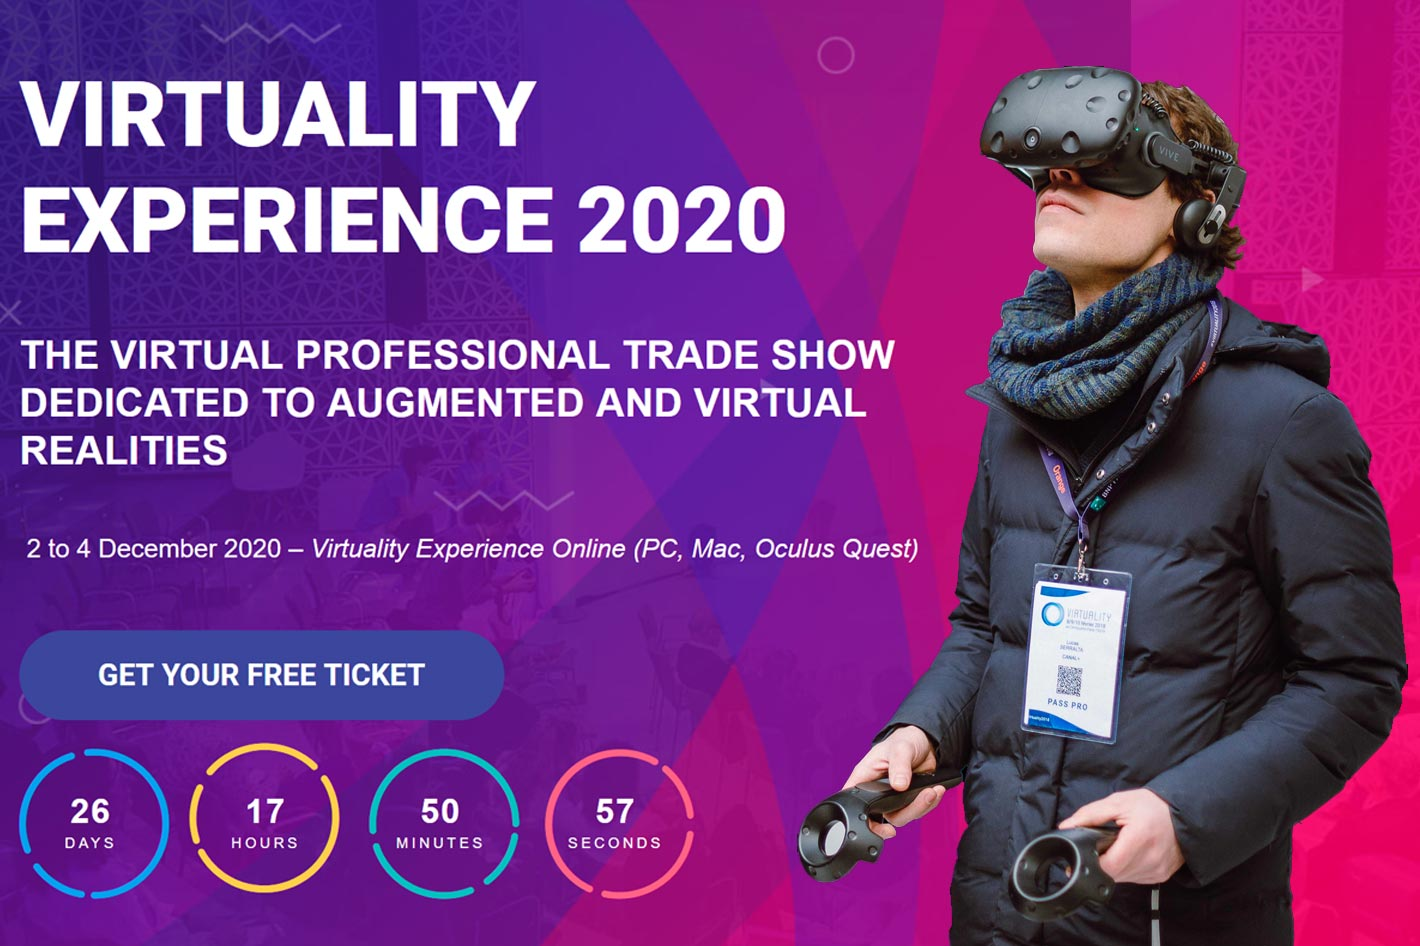 Virtuality to become a complete online event